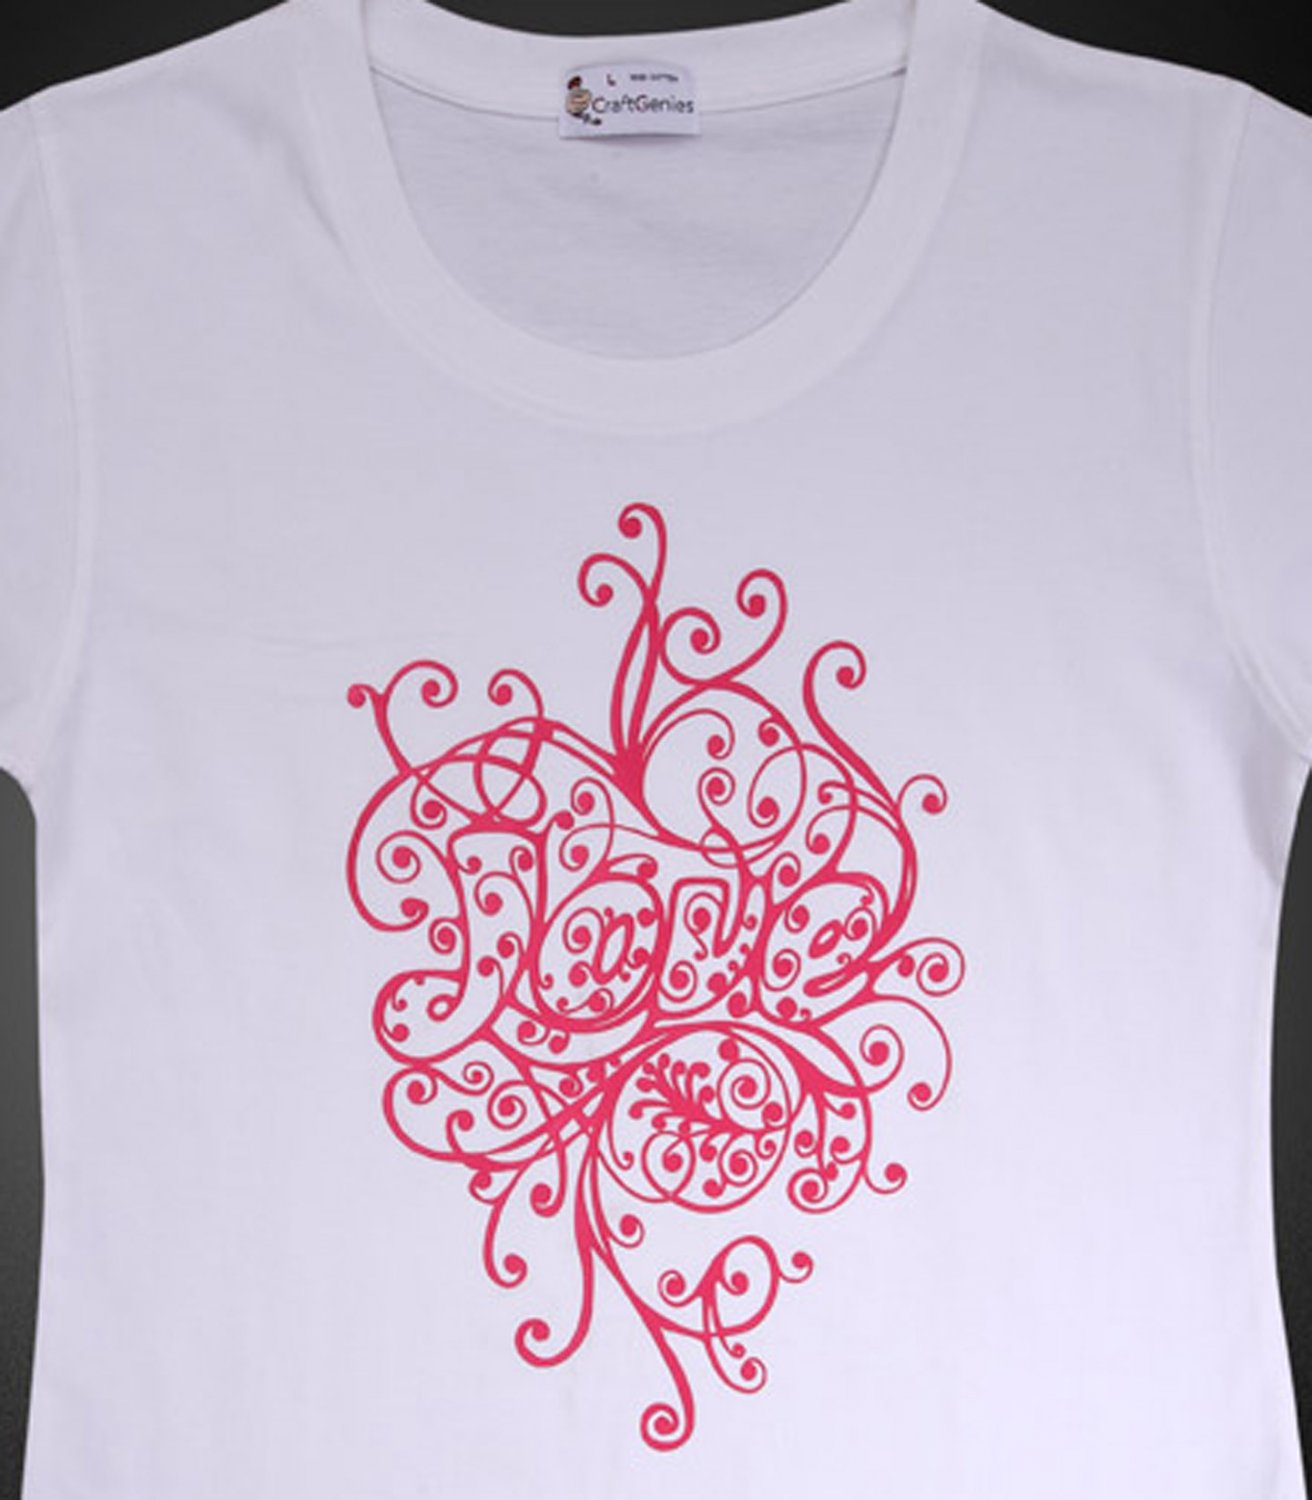 "Artistic Letter ""LOVE"" T-Shirt Design for Women, New   (Women's Large)"